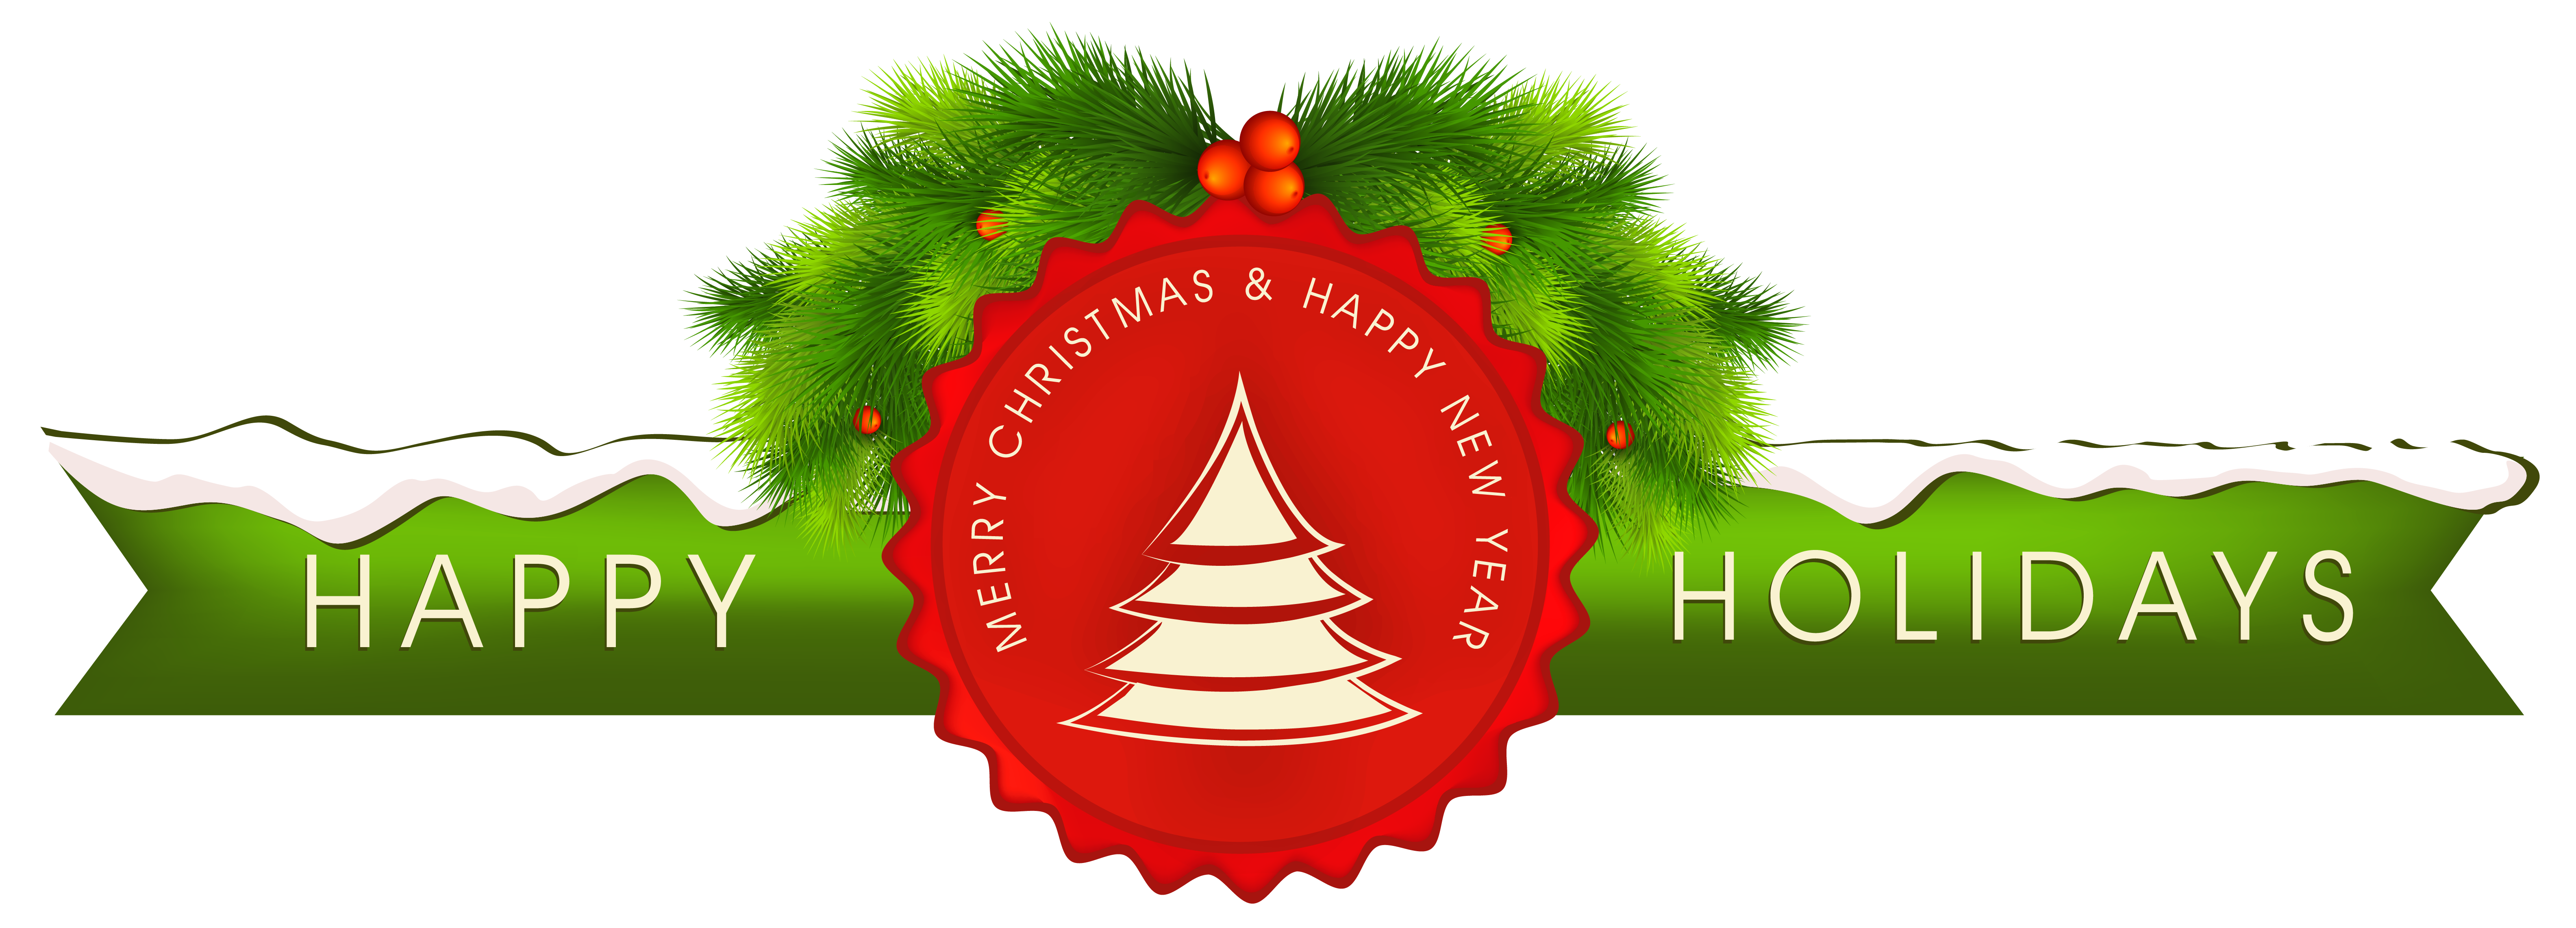 Christmas eve clipart christian image royalty free stock Merry Christmas Text Decor PNG Clipart Image   Gallery Yopriceville ... image royalty free stock